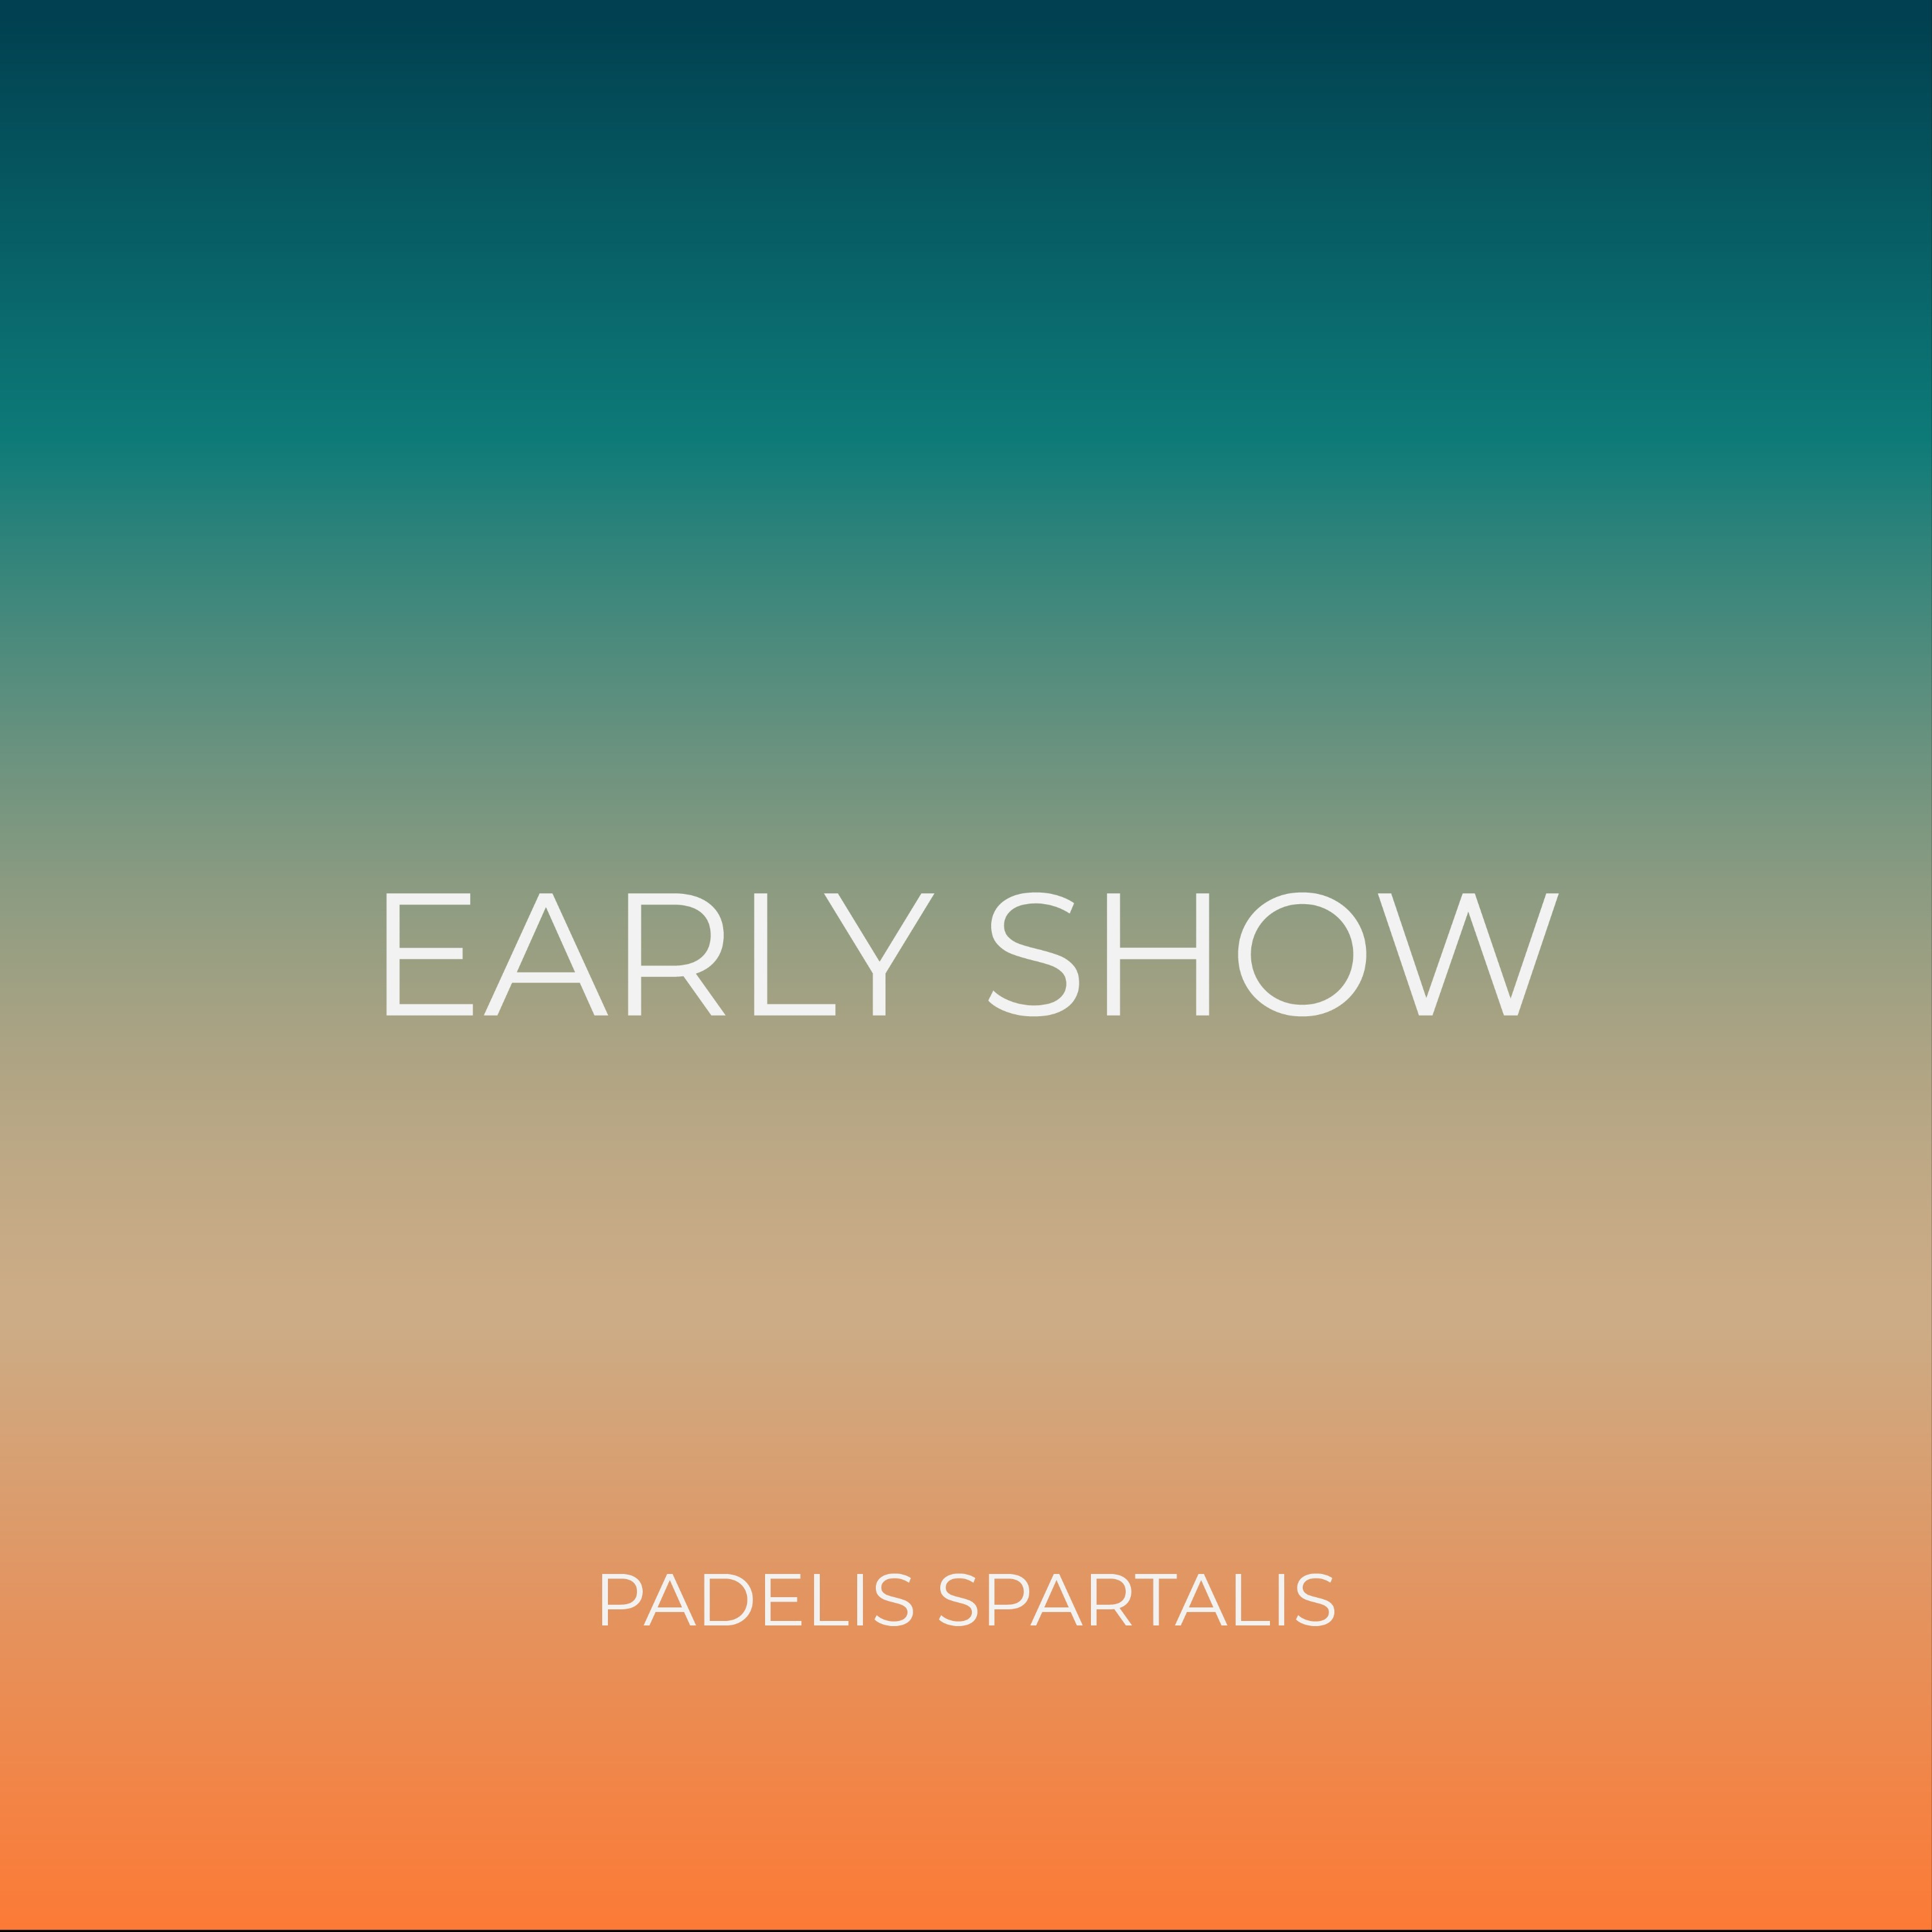 Early Show